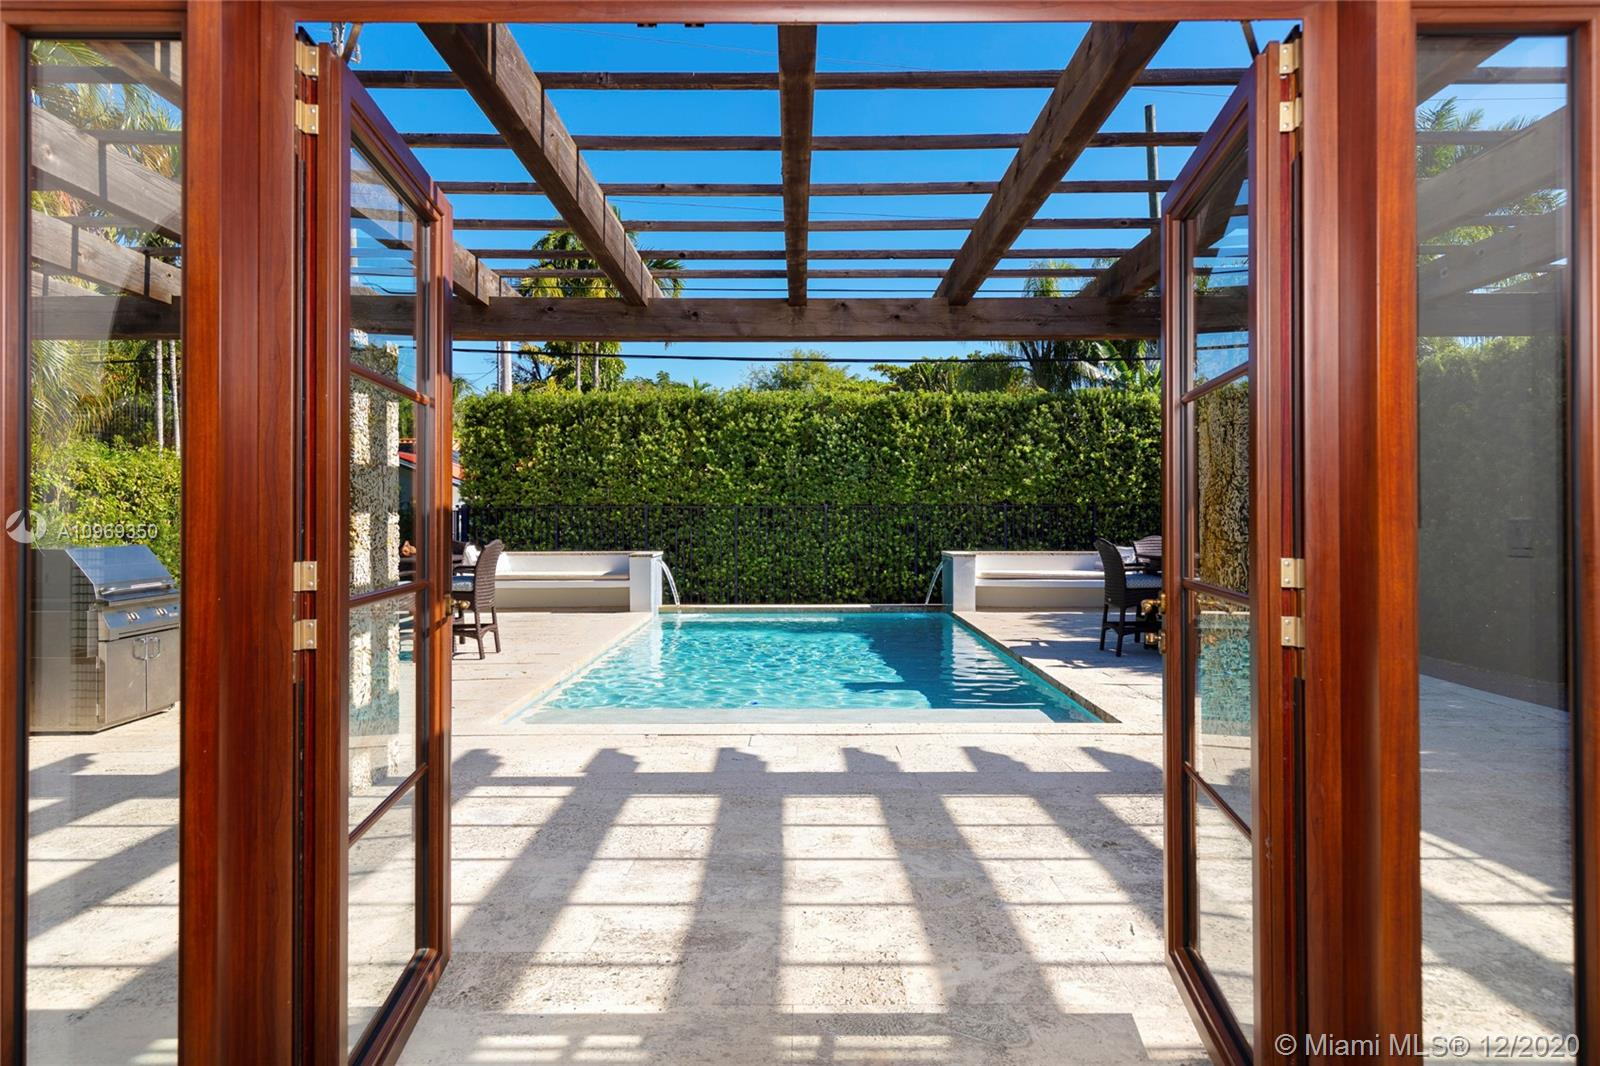 Located on an idyllic neighborhood street in the North Grove, just steps from Biscayne Bay and an incredible lifestyle. This warm and inviting home features marble floors, custom kitchen with high-end appliances, new roof, plumbing, and electrical. Through the Italian impact doors, you'll see the crown jewel of the home – an inspired, Portuondo Perotti pool terrace with pergola, coral rock columns, outdoor shower, and waterfall.  The backyard oasis truly feels like its own vacation getaway! Behind the lush privacy hedge discover a secret garden of fruit trees and space to create whatever brings you joy. Immaculate and worry-free, this home is the one you have been waiting for!